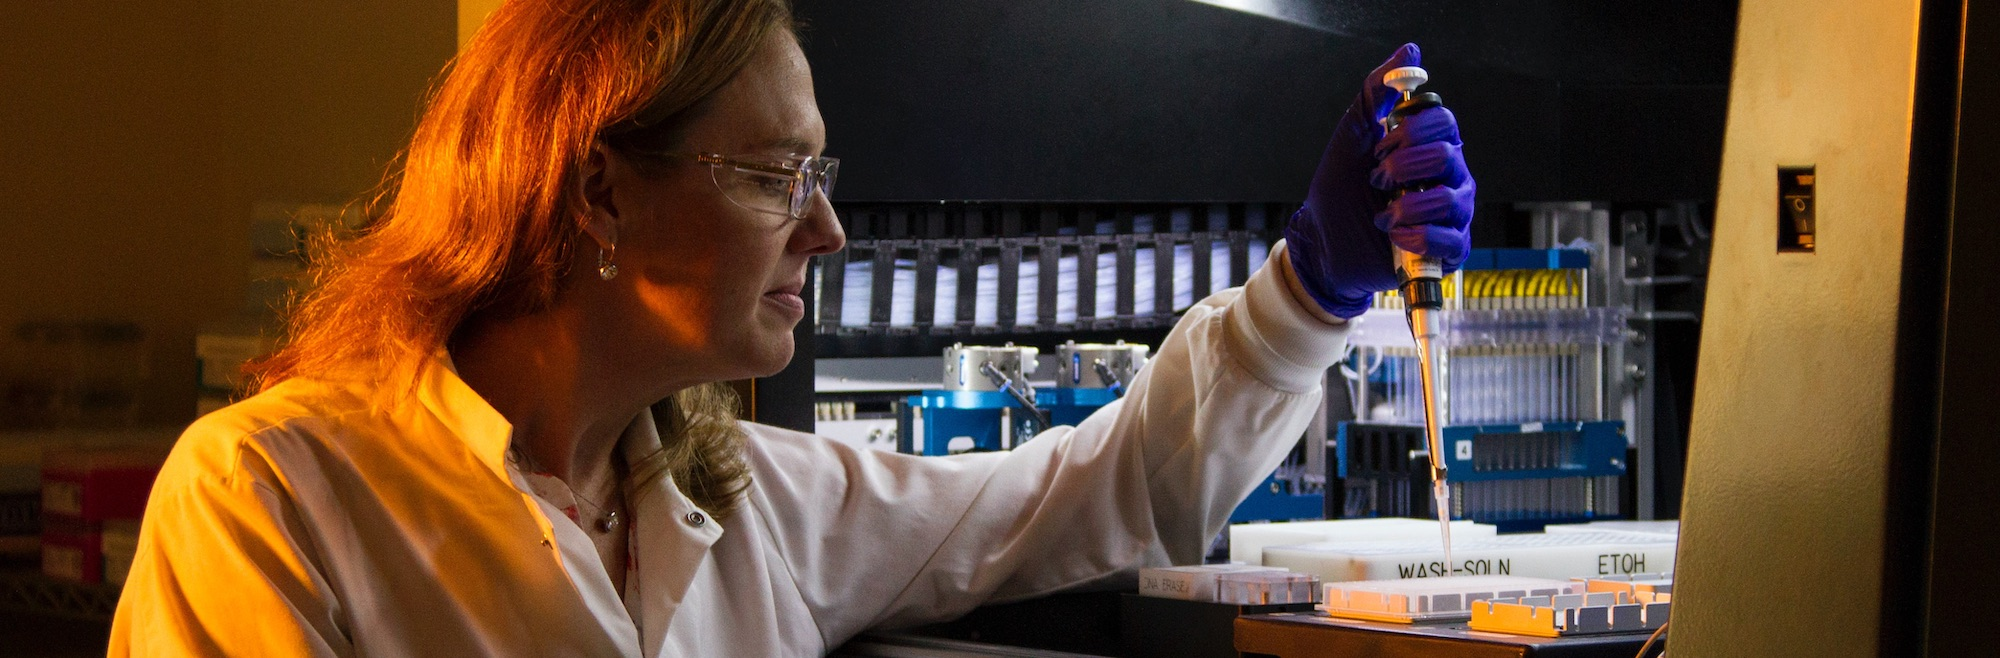 woman pipetting in a lab